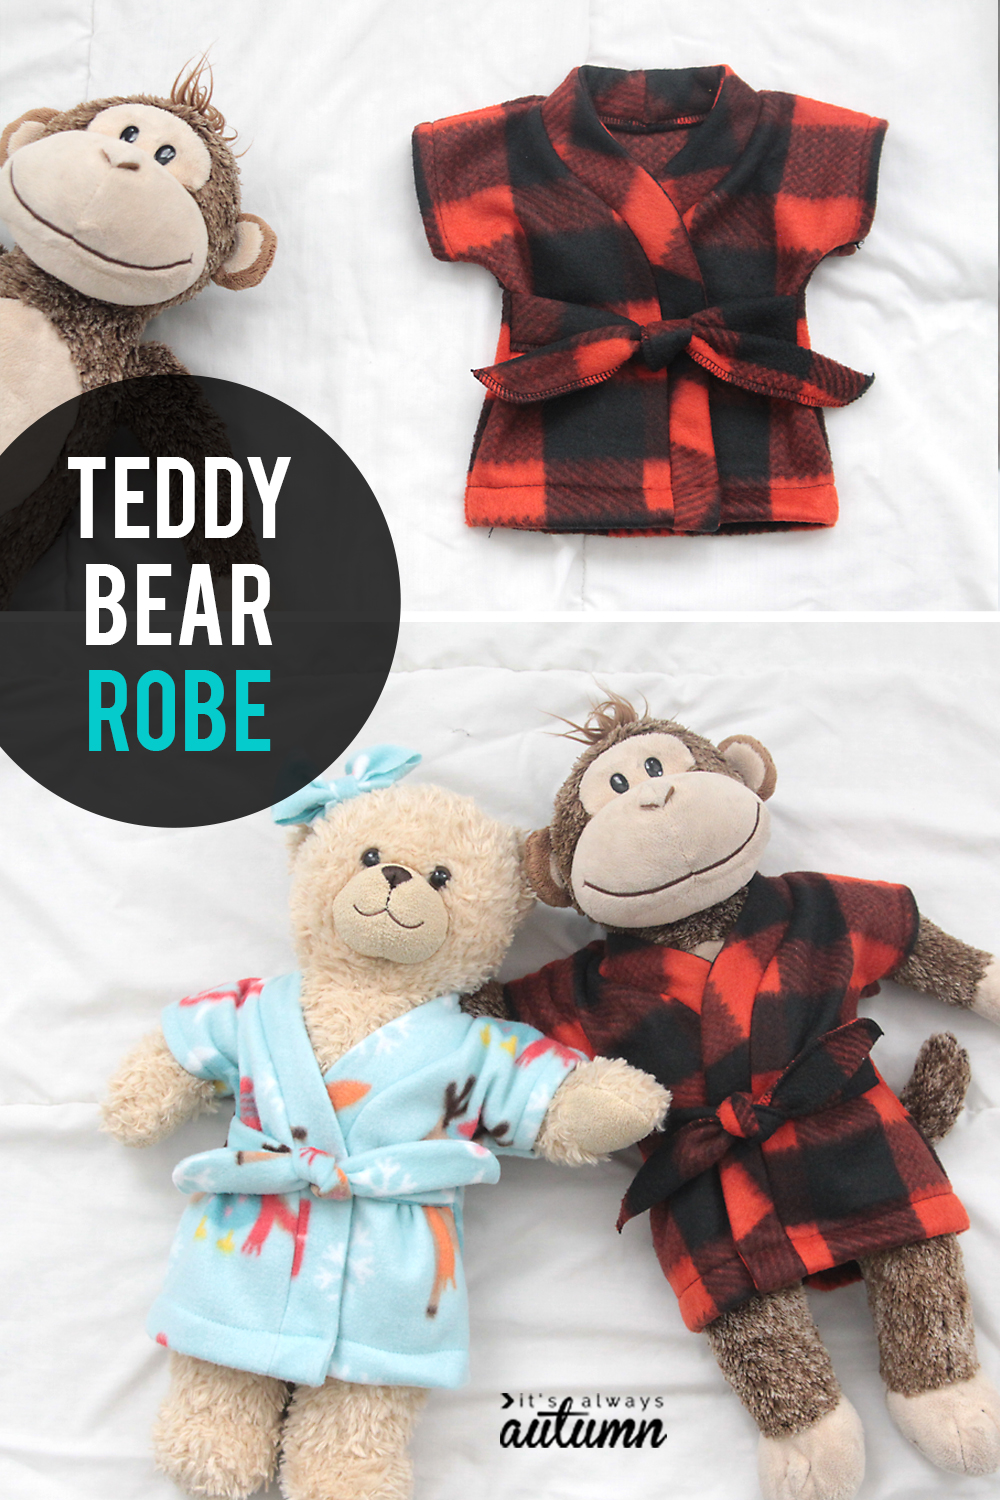 Sew this adorable teddy bear robe with a free sewing pattern. Fun Christmas gift for kids!